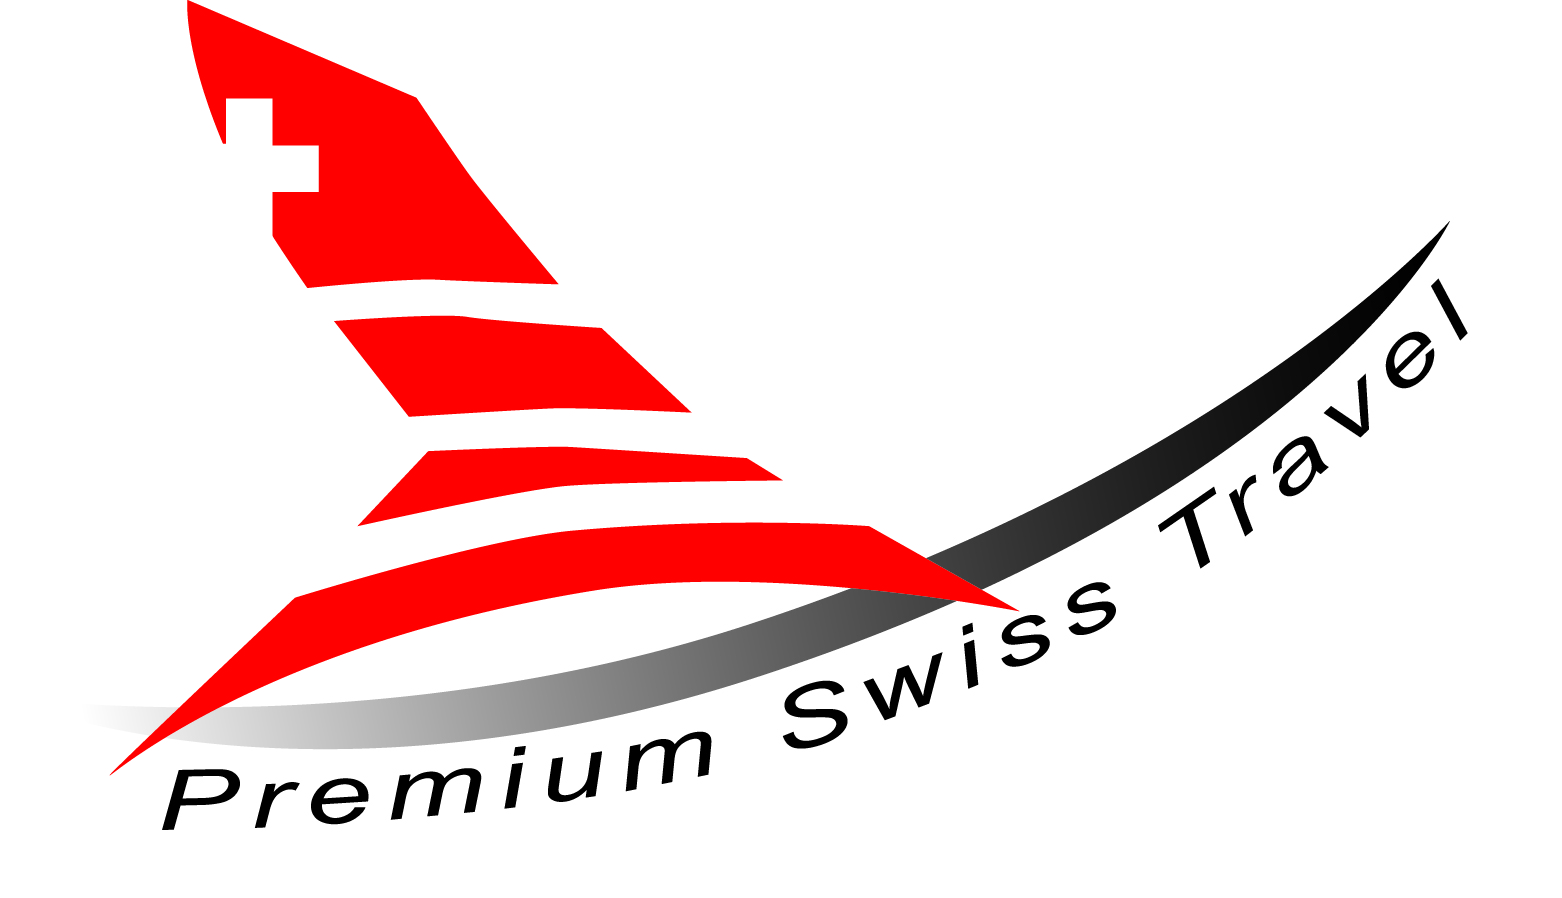 Premium Swiss Travel | Search results tours - Premium Swiss Travel